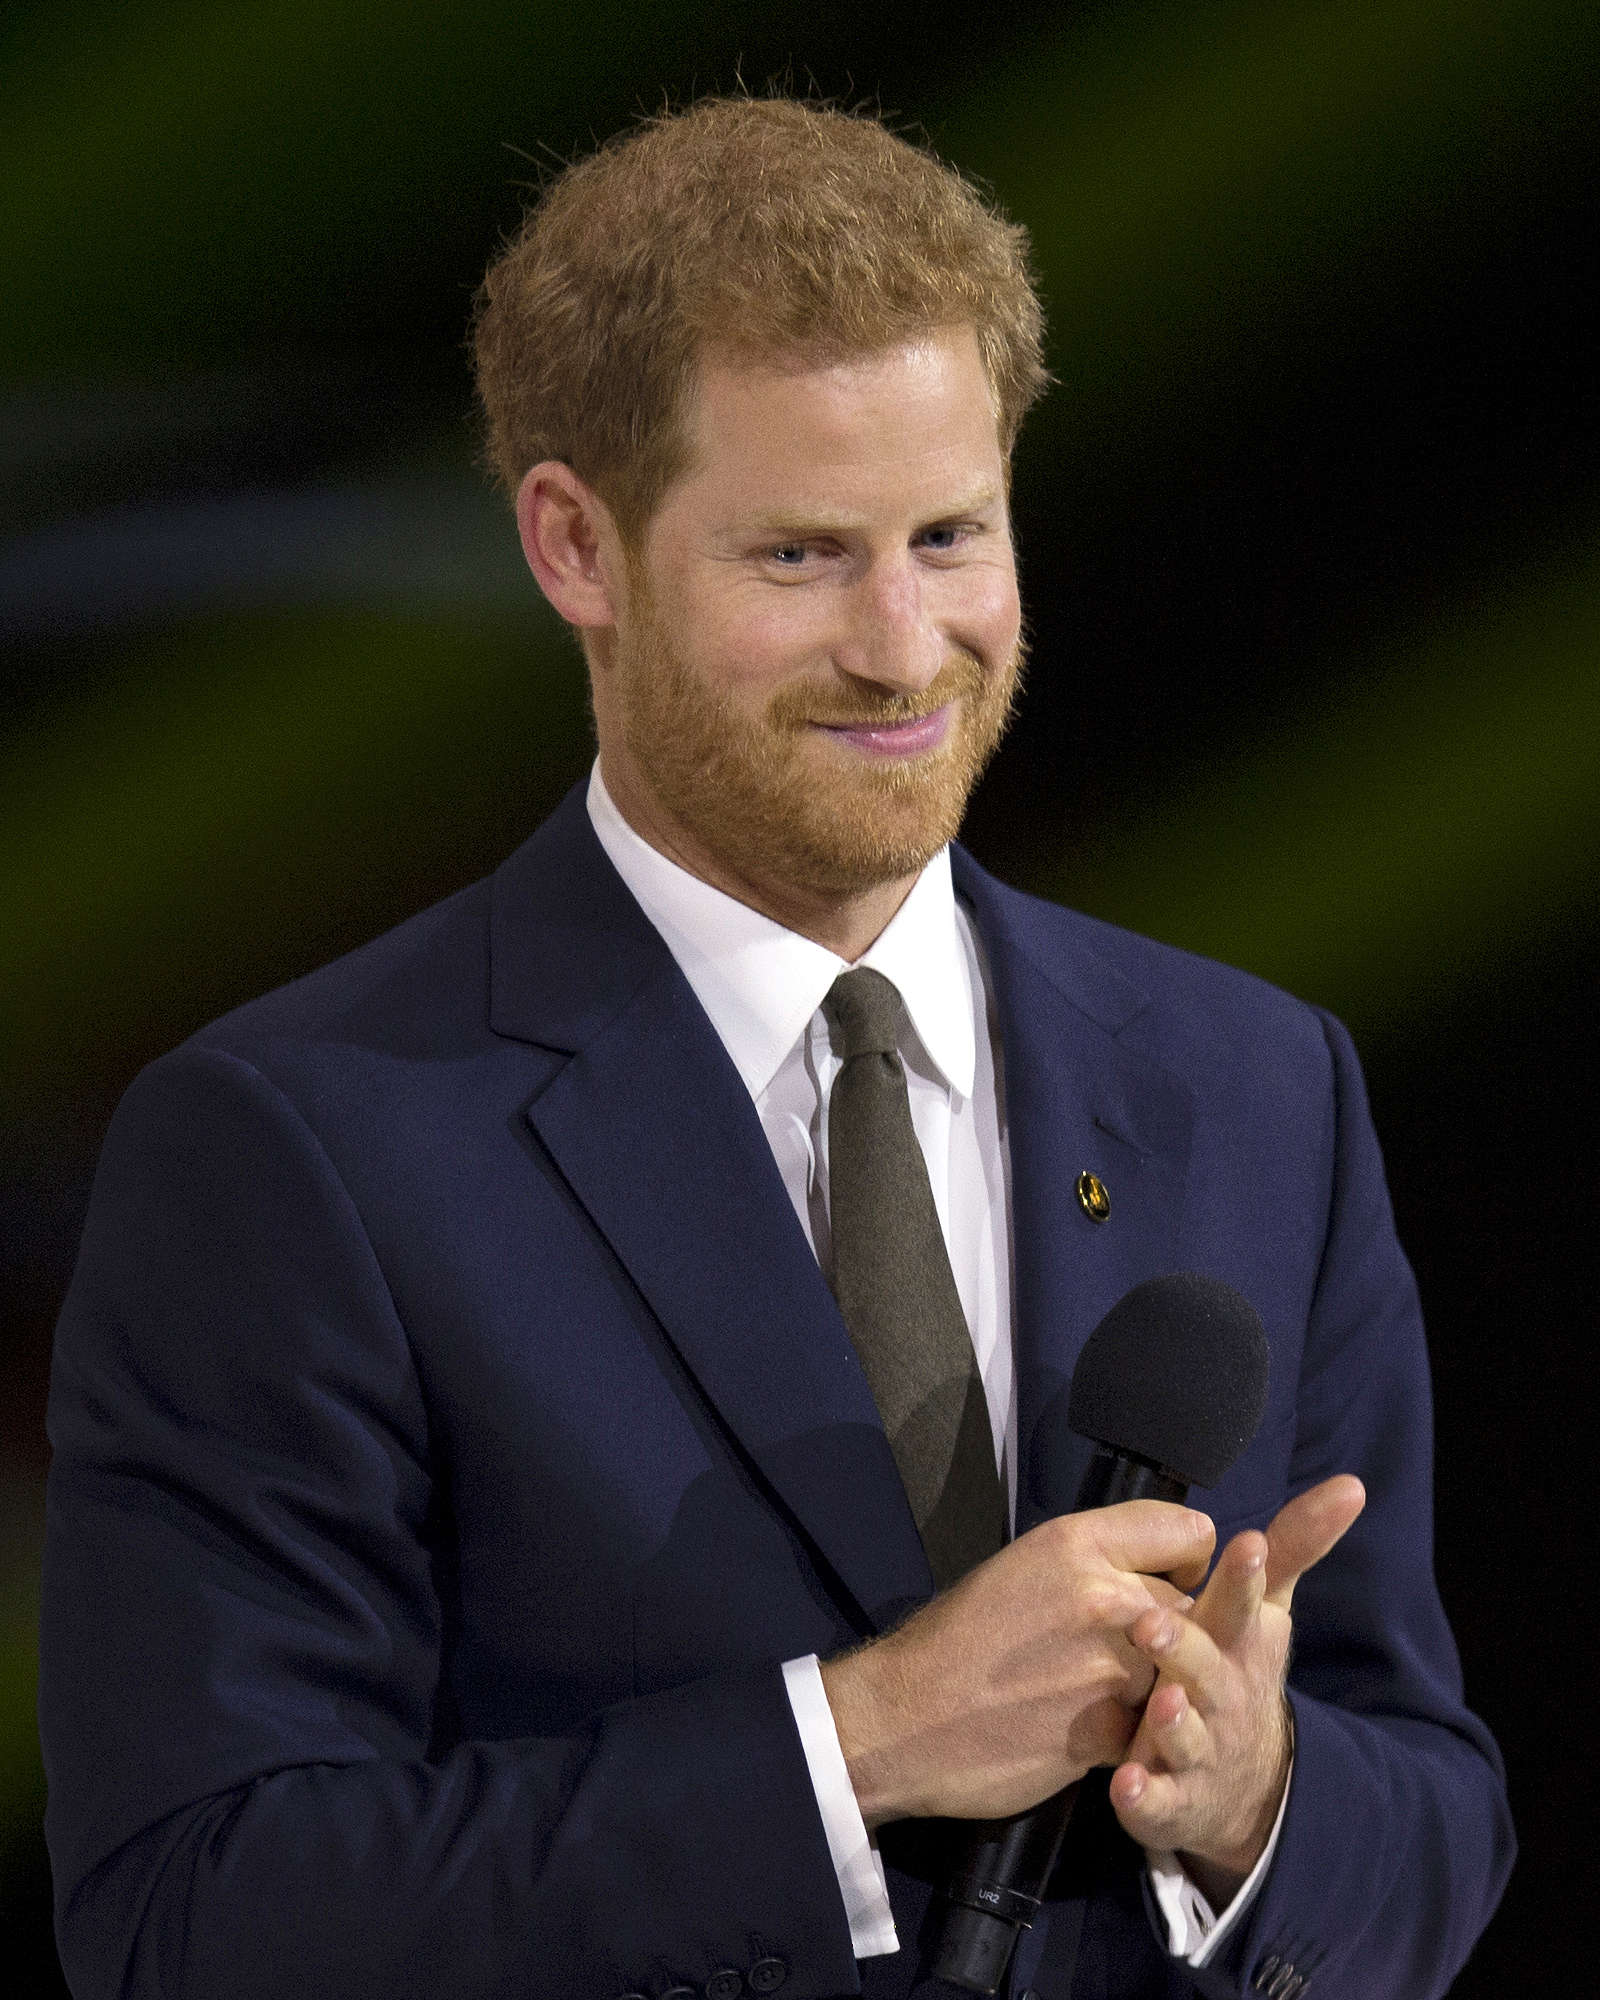 Pictures Prince Harry nudes (59 images), Paparazzi